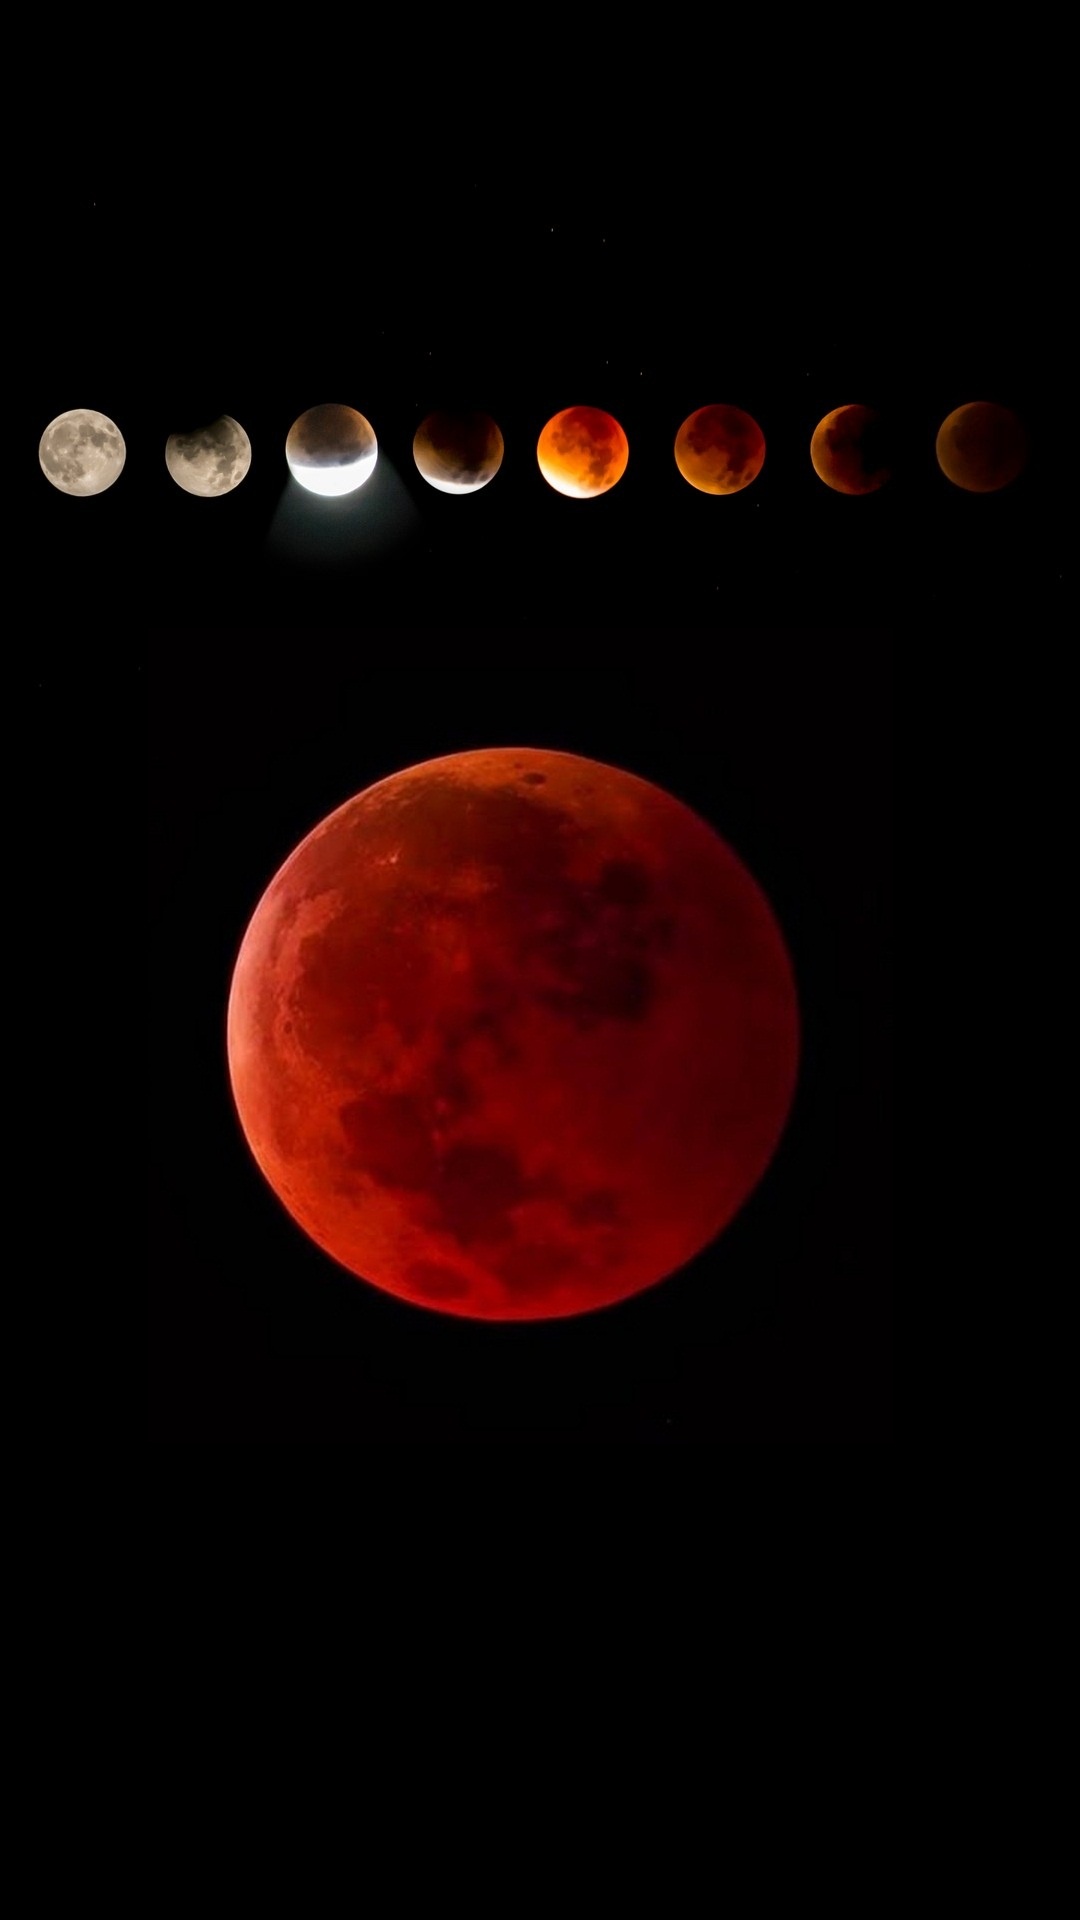 Android Wallpaper Blood Moon Lunar Eclipse   2020 Android Wallpapers 1080x1920